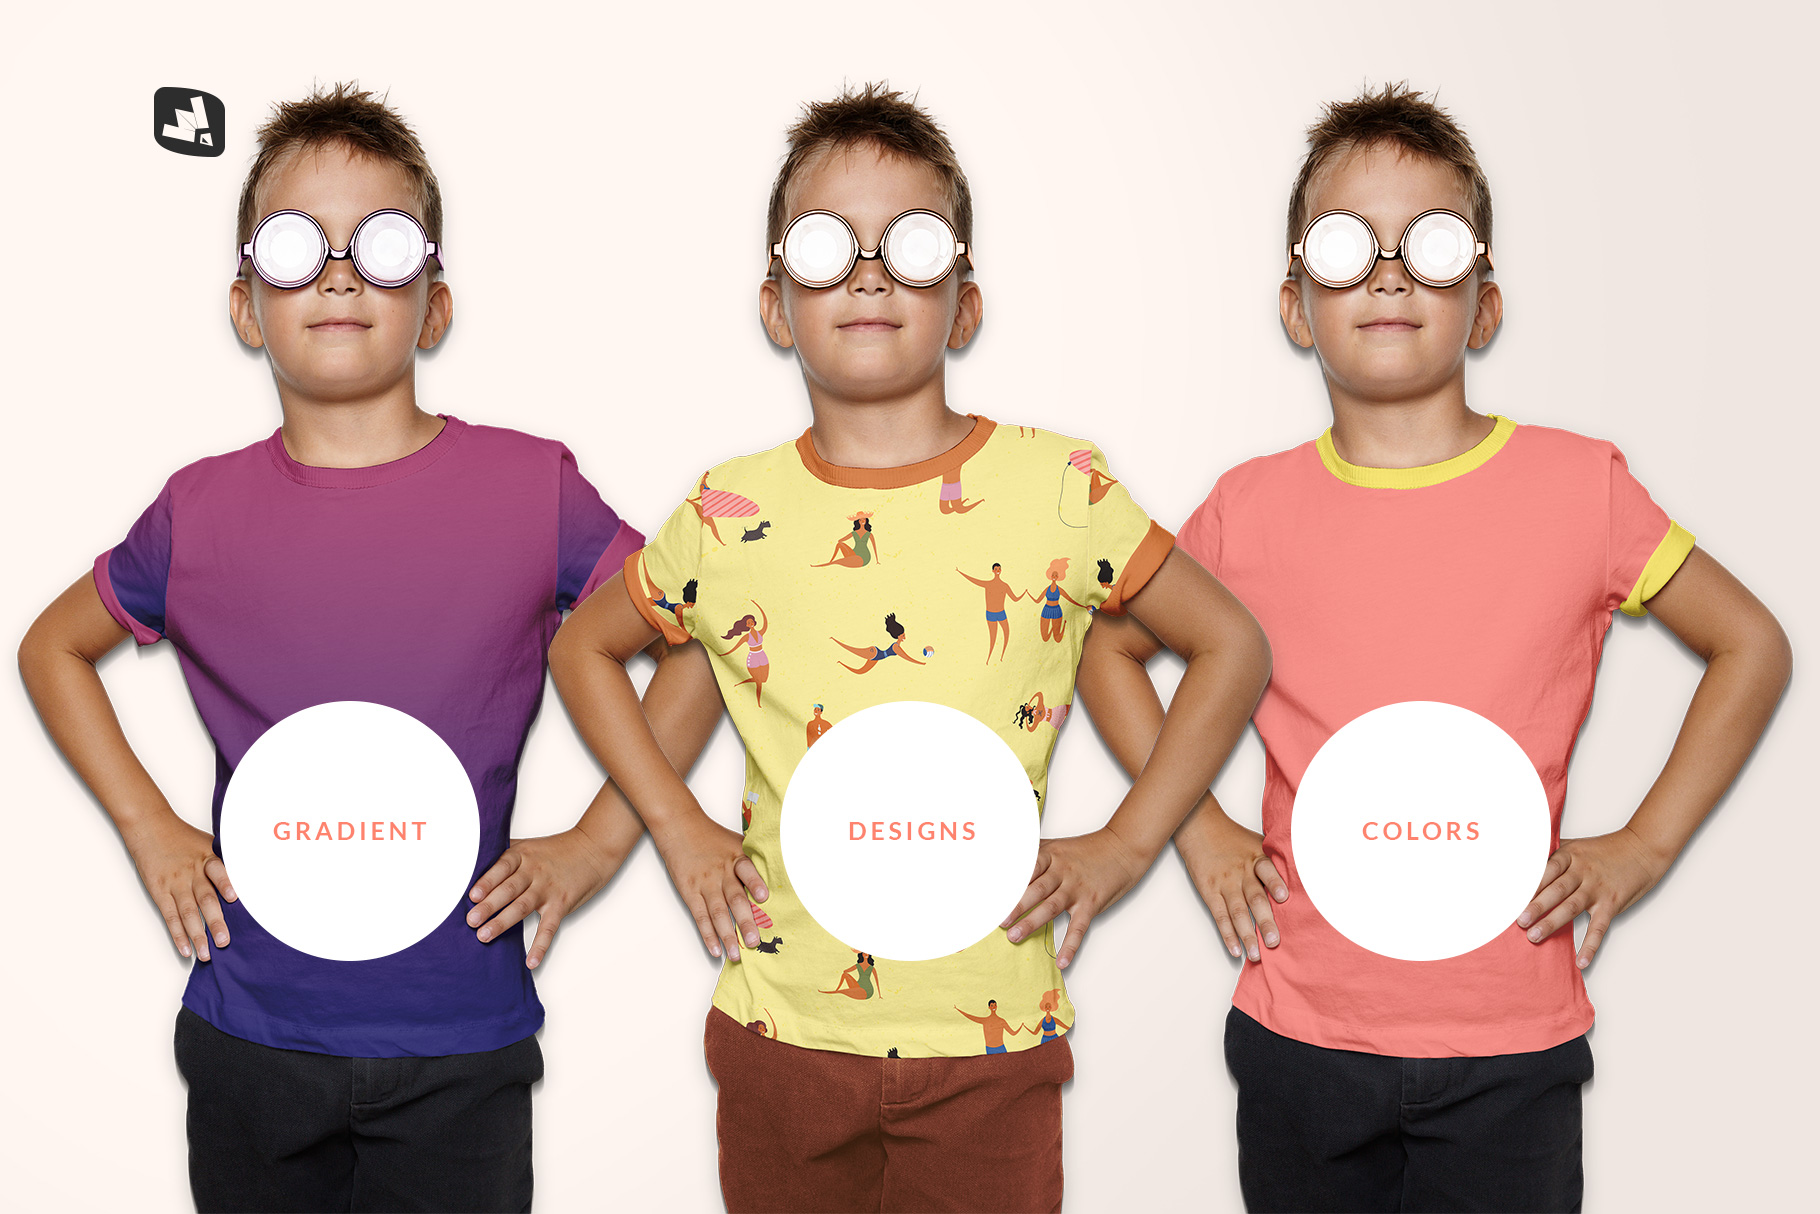 types of the kid's everyday outfit mockup with sunglasses